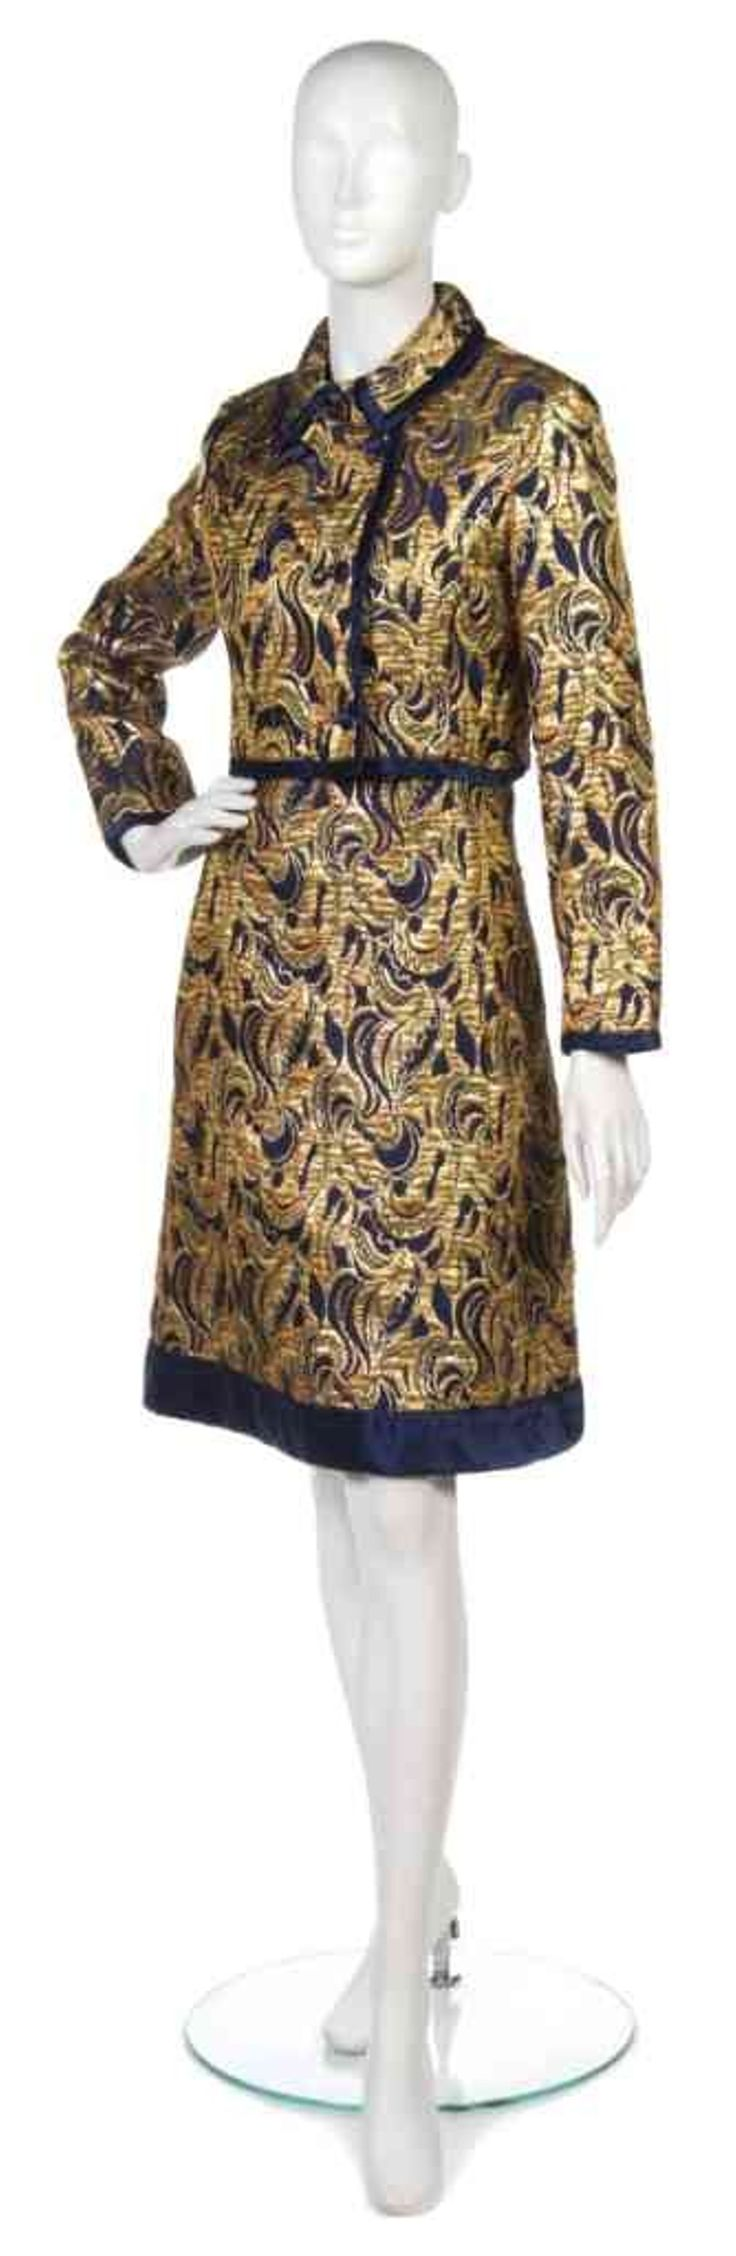 69: A Malcolm Starr Navy Blue Gold Brocade Dress Suit. - 2